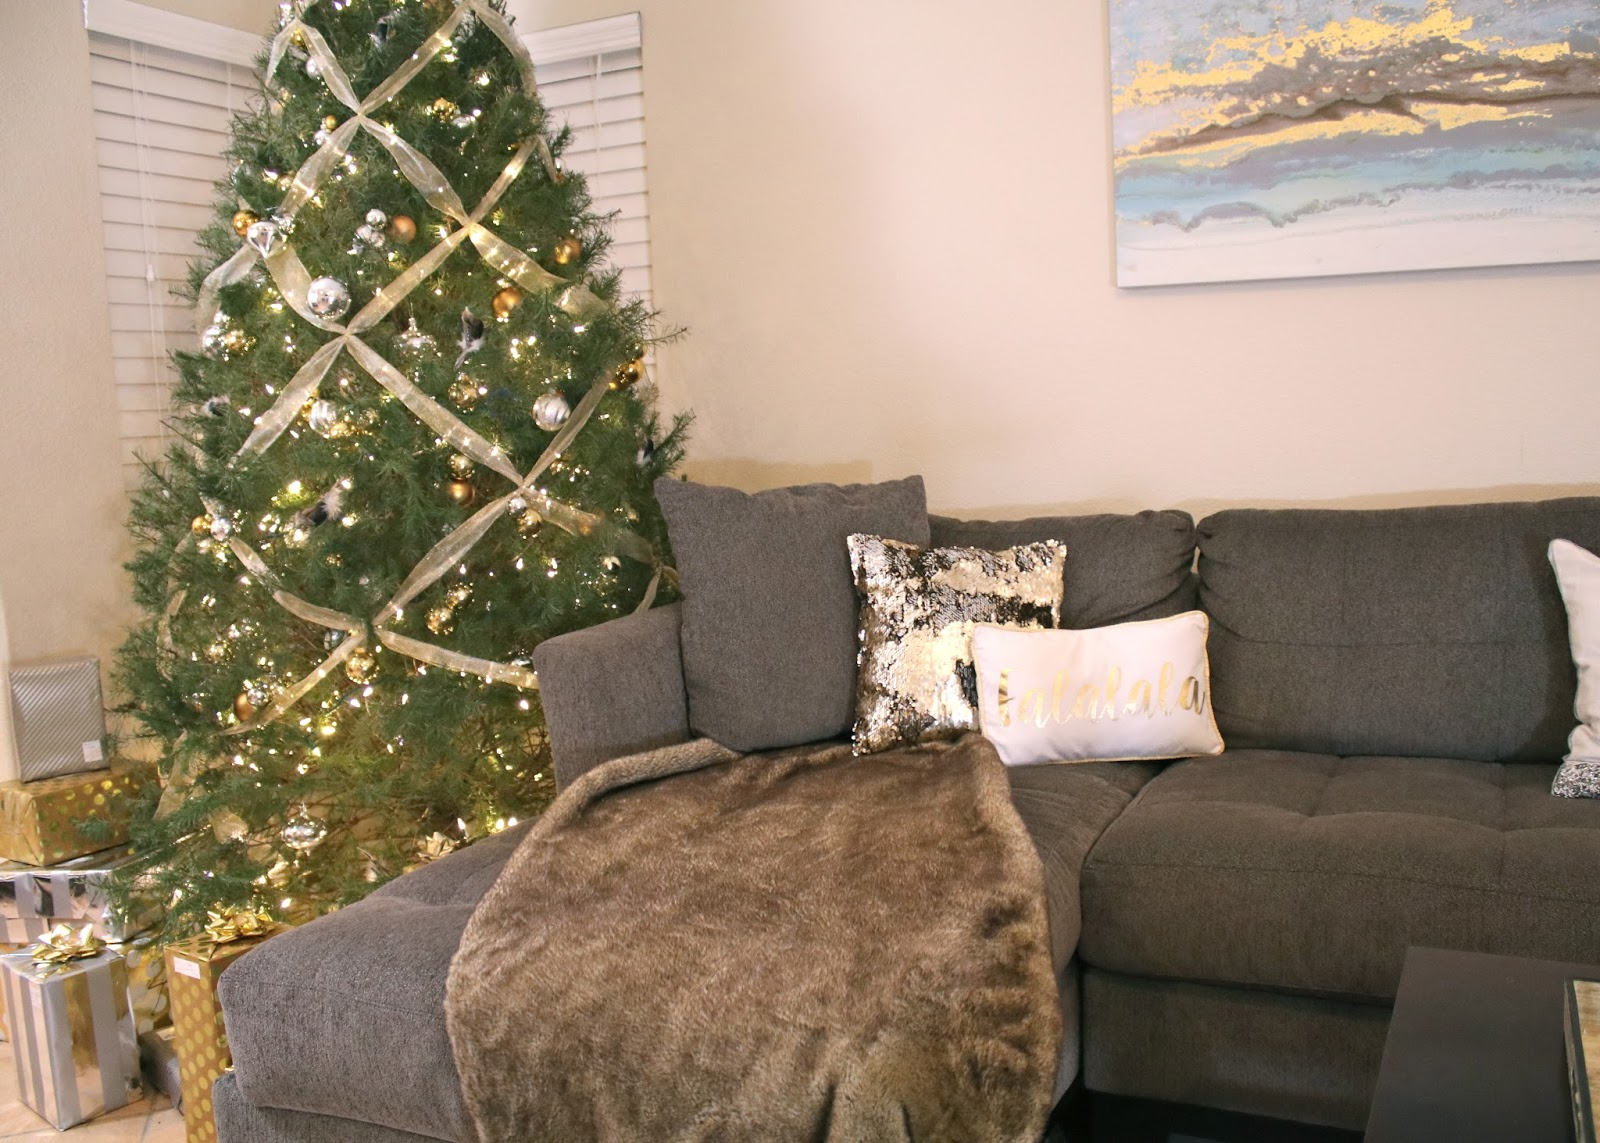 Faux Fur throw and Christmas Tree, gold ribbon on Christmas tree